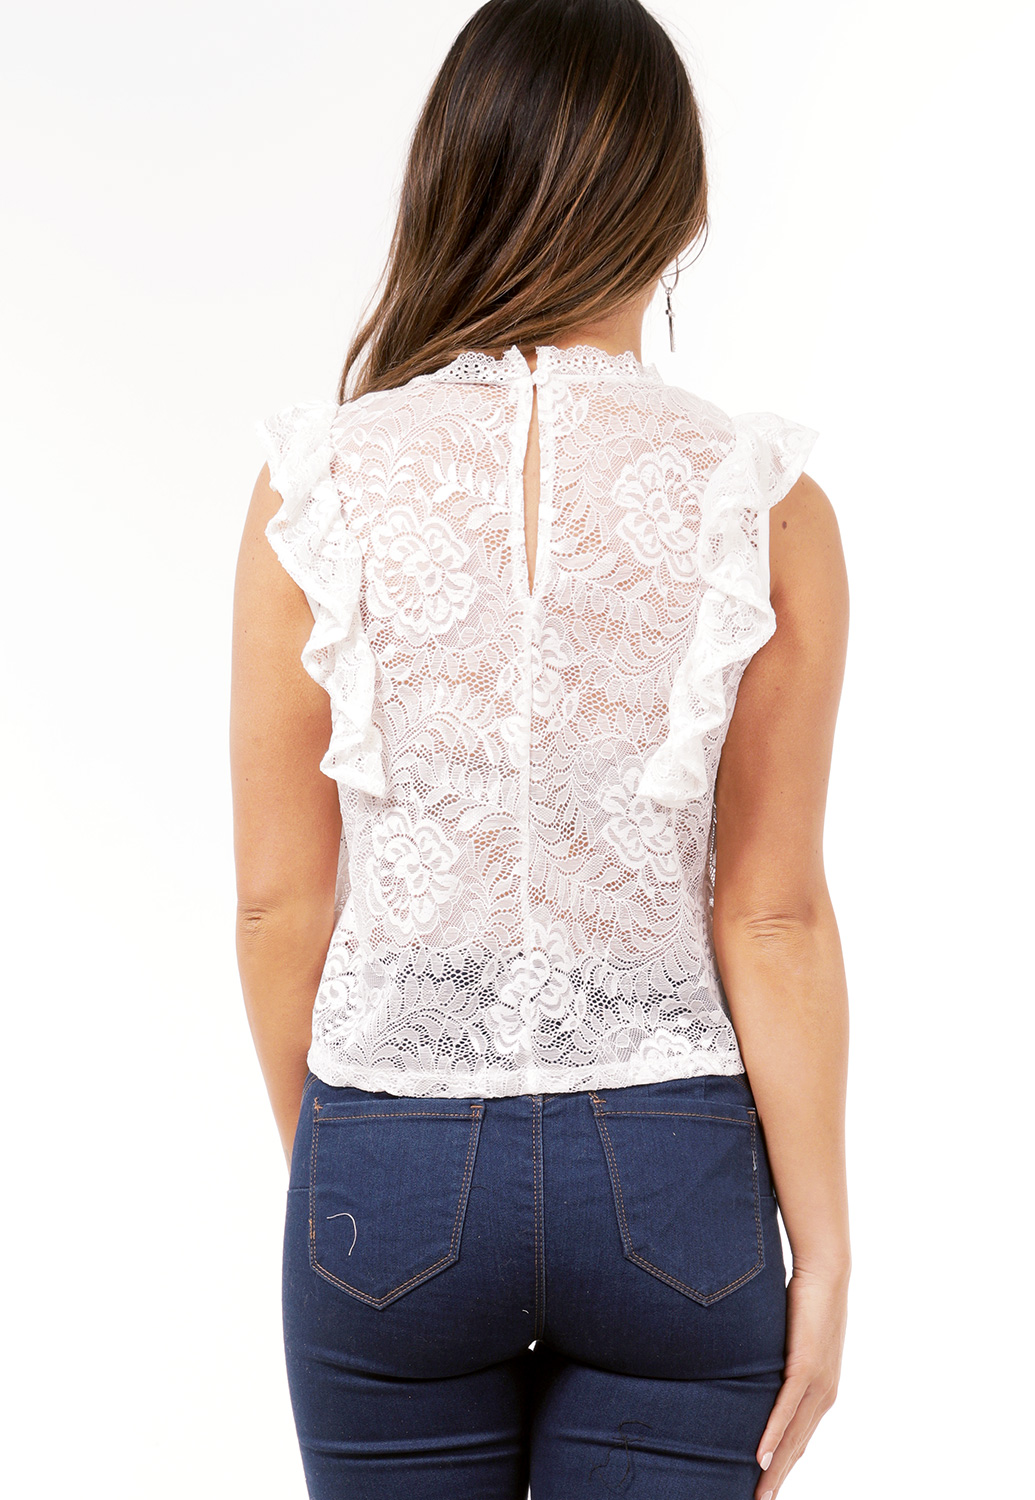 Sheer Floral Lace Top